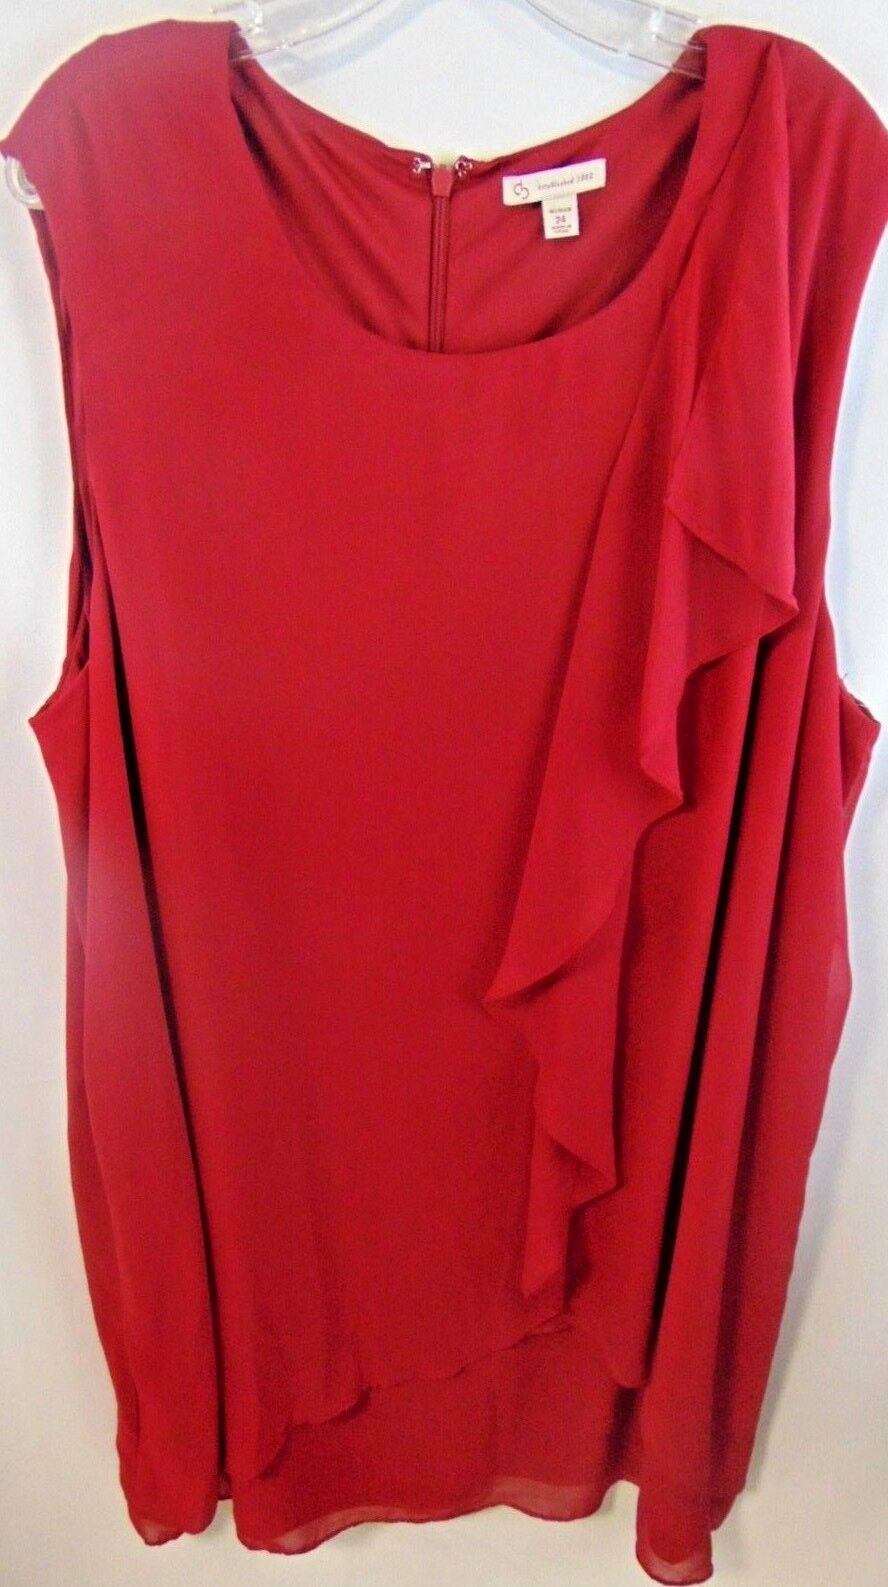 CB  Woman's size 24 Red Sheer Knee length Zip up Dress New with tag